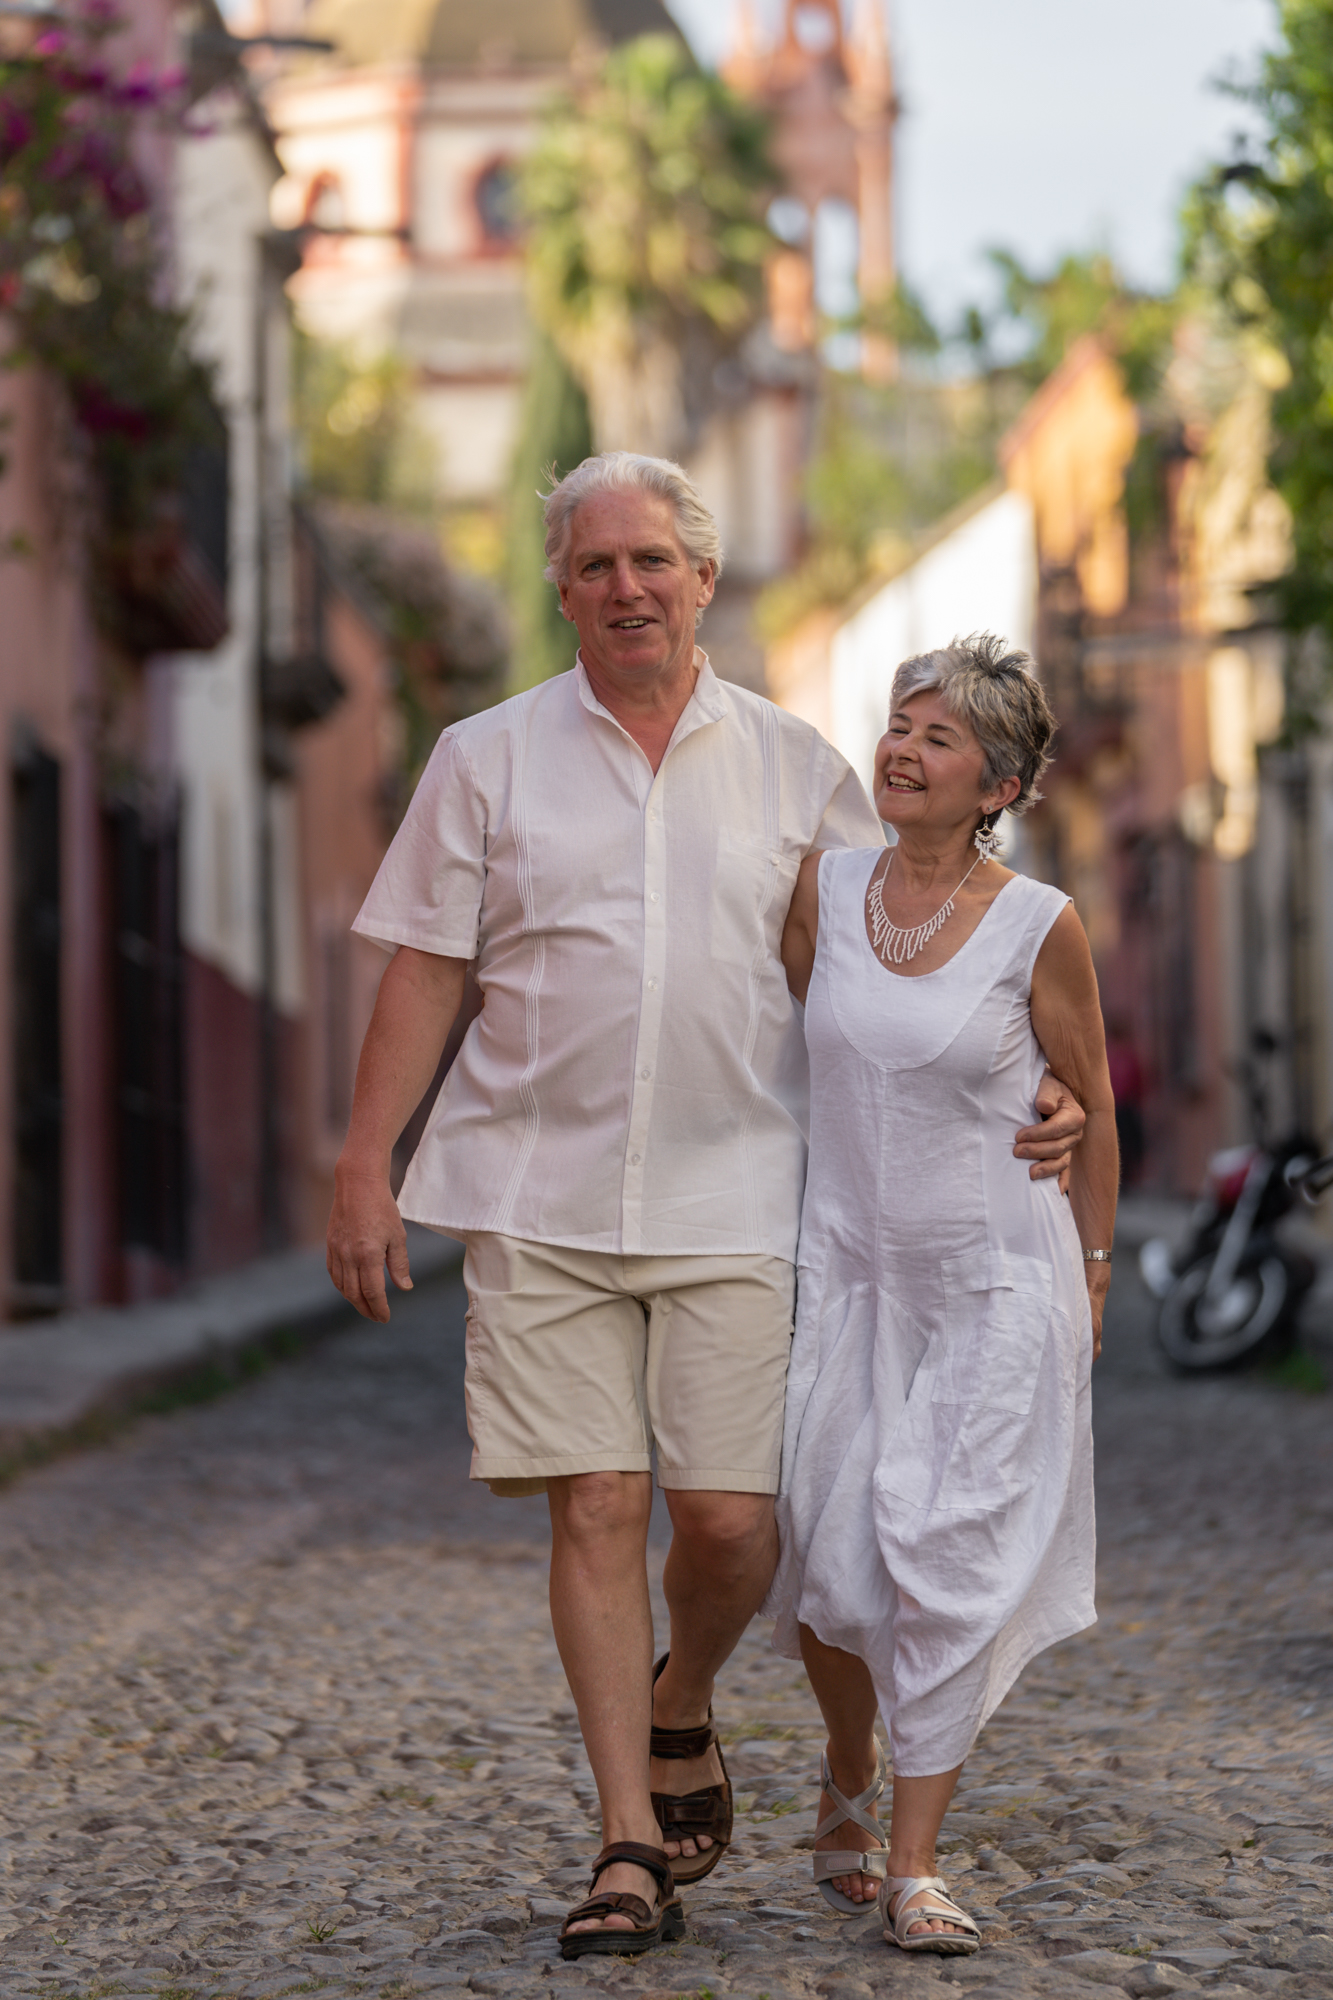 Photoshoot session in San Miguel de Allende with Suzanne and Leo-16.jpg